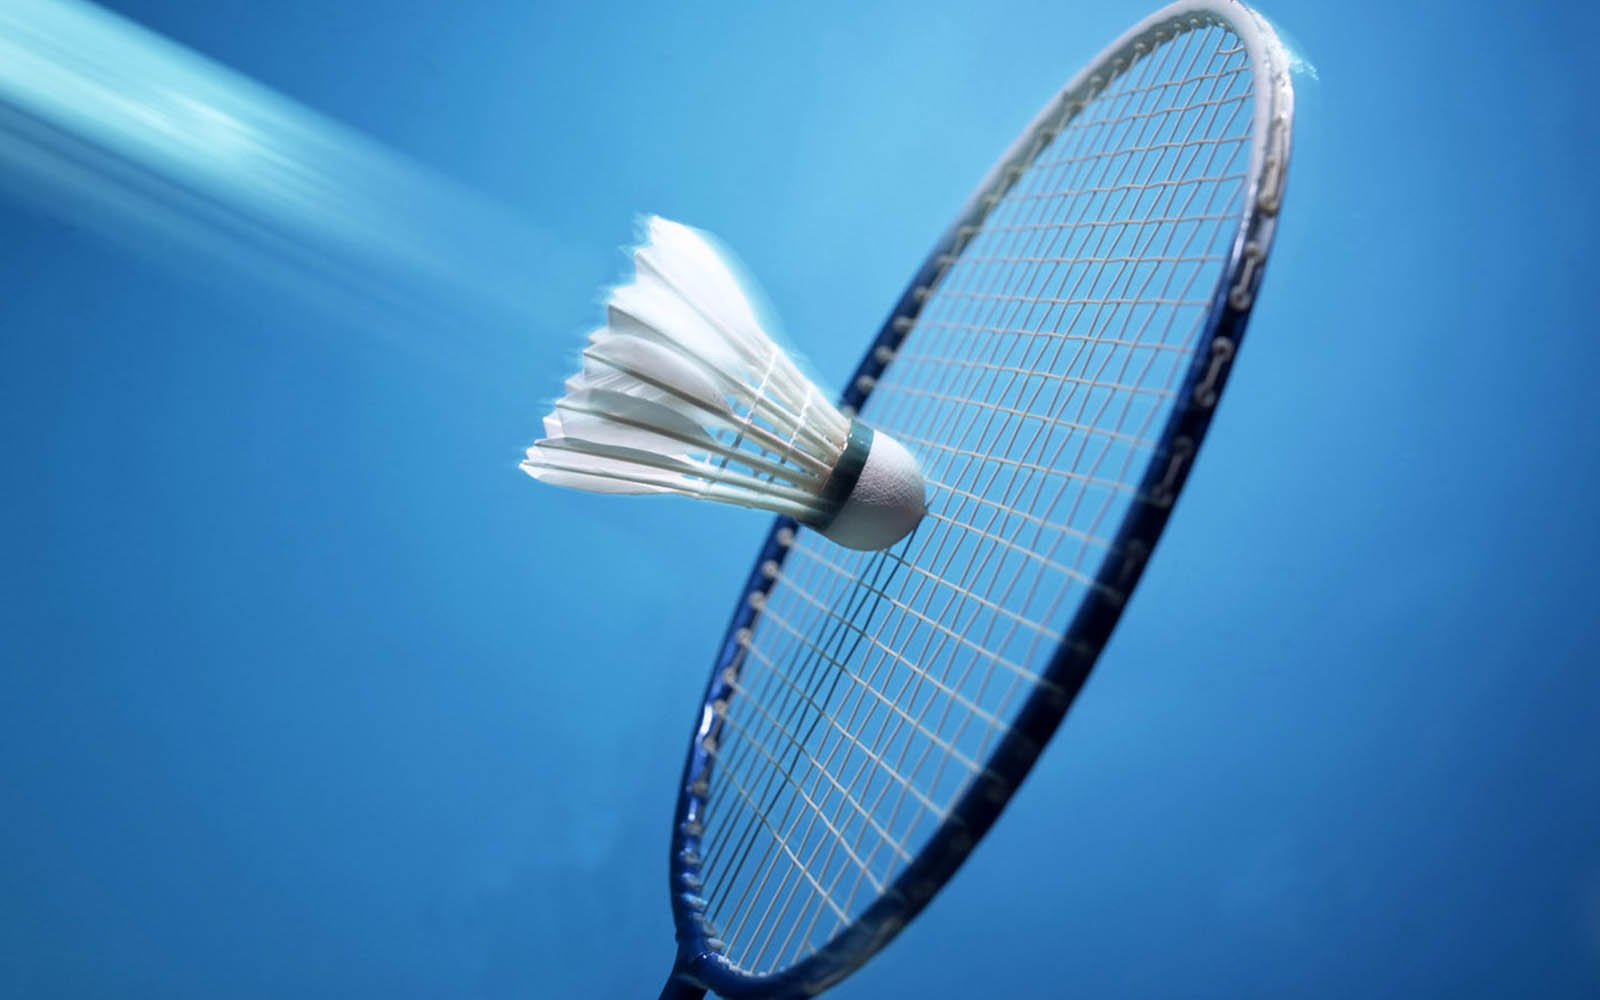 Sports - Badminton  Wallpaper